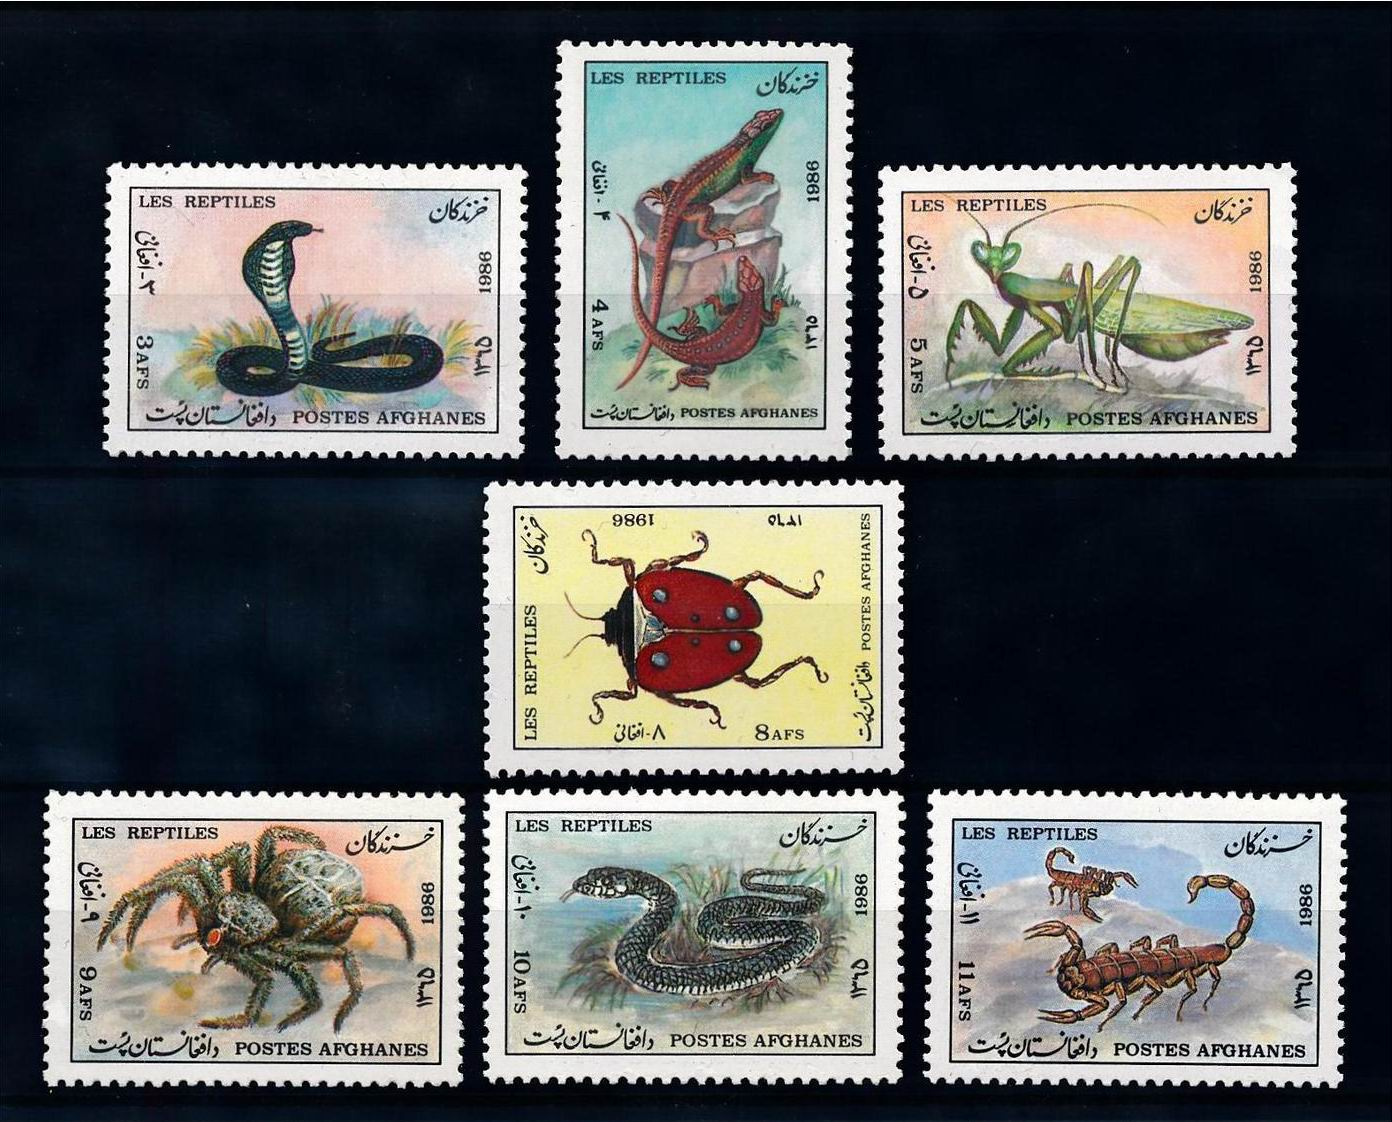 Afghanistan 1988 Stamps Reptiles Spider Snake Scorpion Mantis